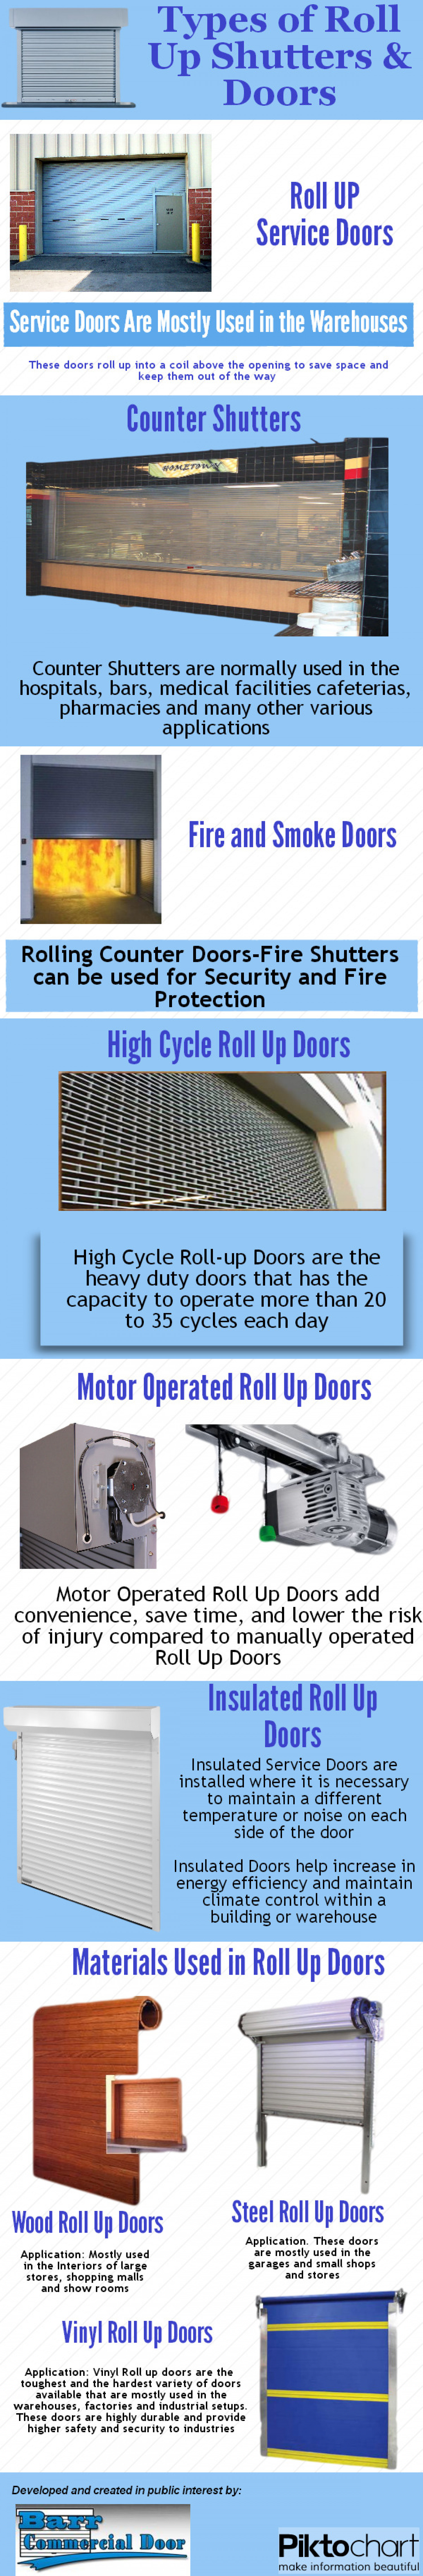 Types of Roll up Shutters and Doors Infographic